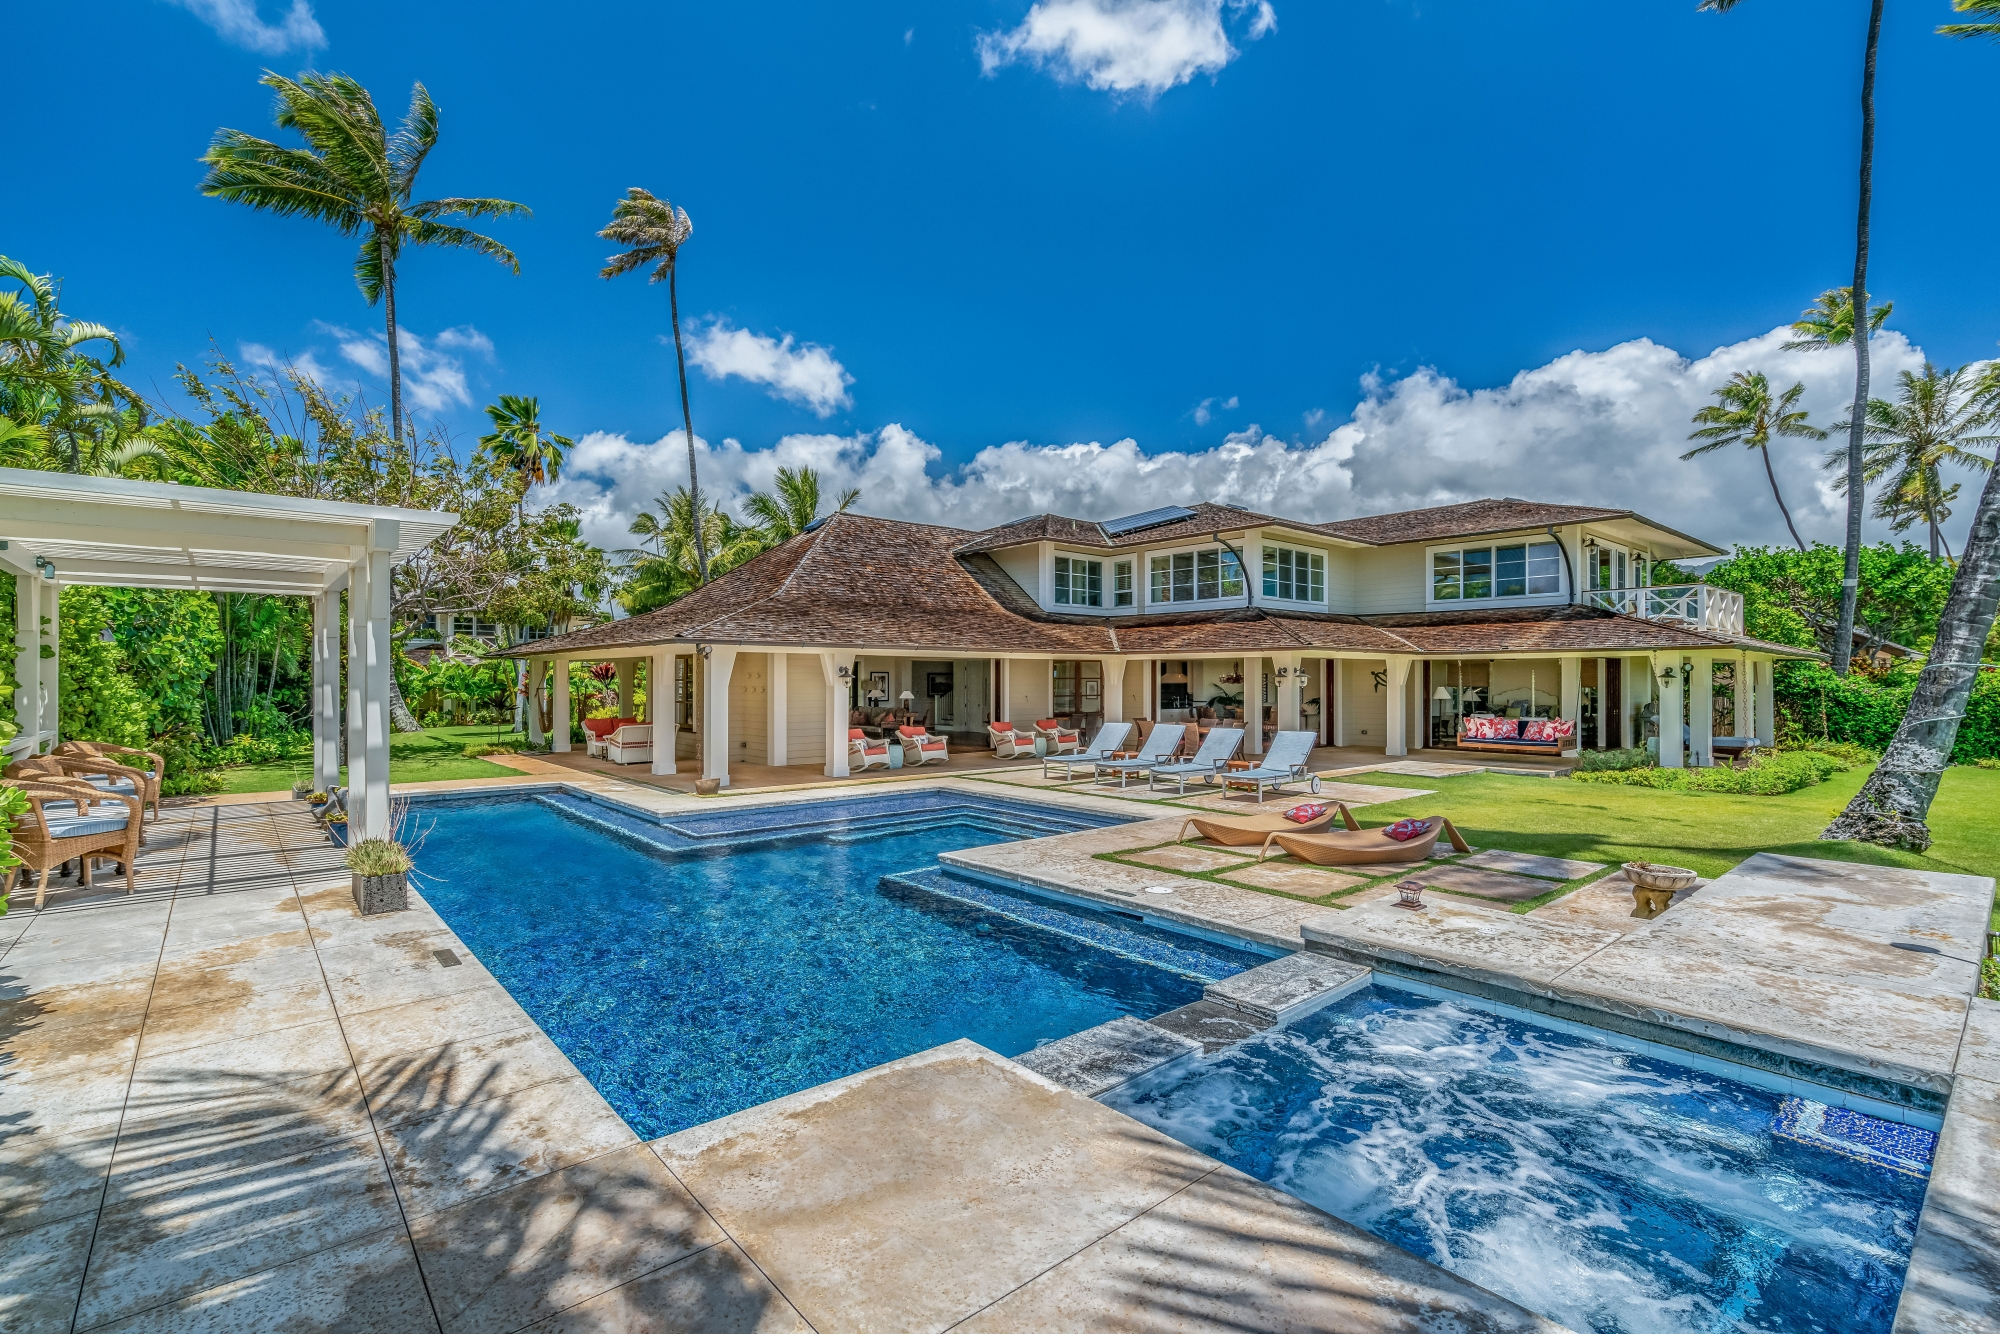 Coral Reef - Pool and hot tub - Oahu Vacation Home